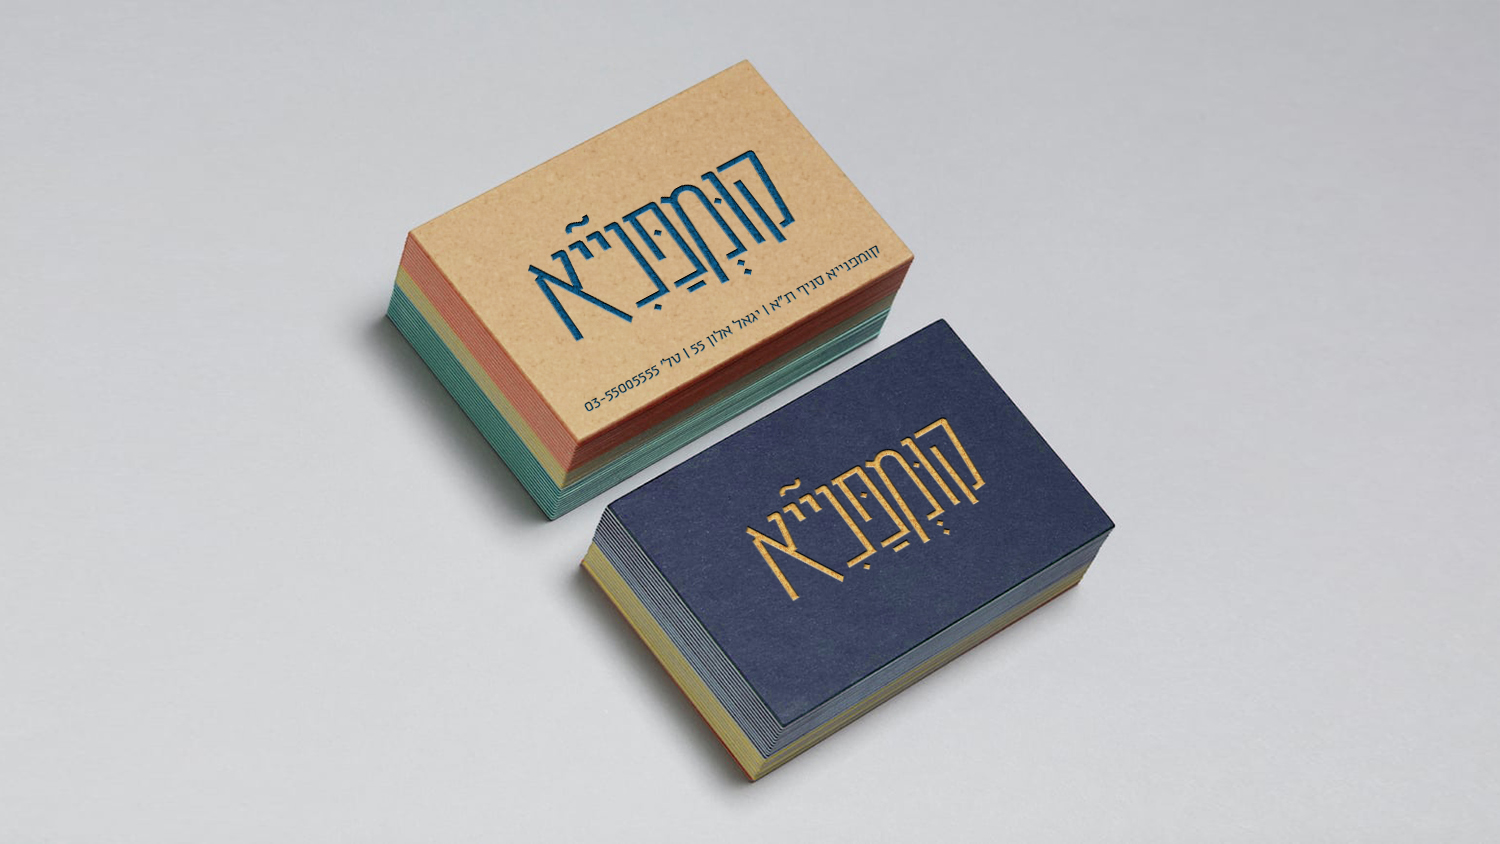 Boris-Guina-business-cards-print-design-art-direction-graphic-design-collateral-by-Bunch-London-Mindsparkle-Mag-5.jpg